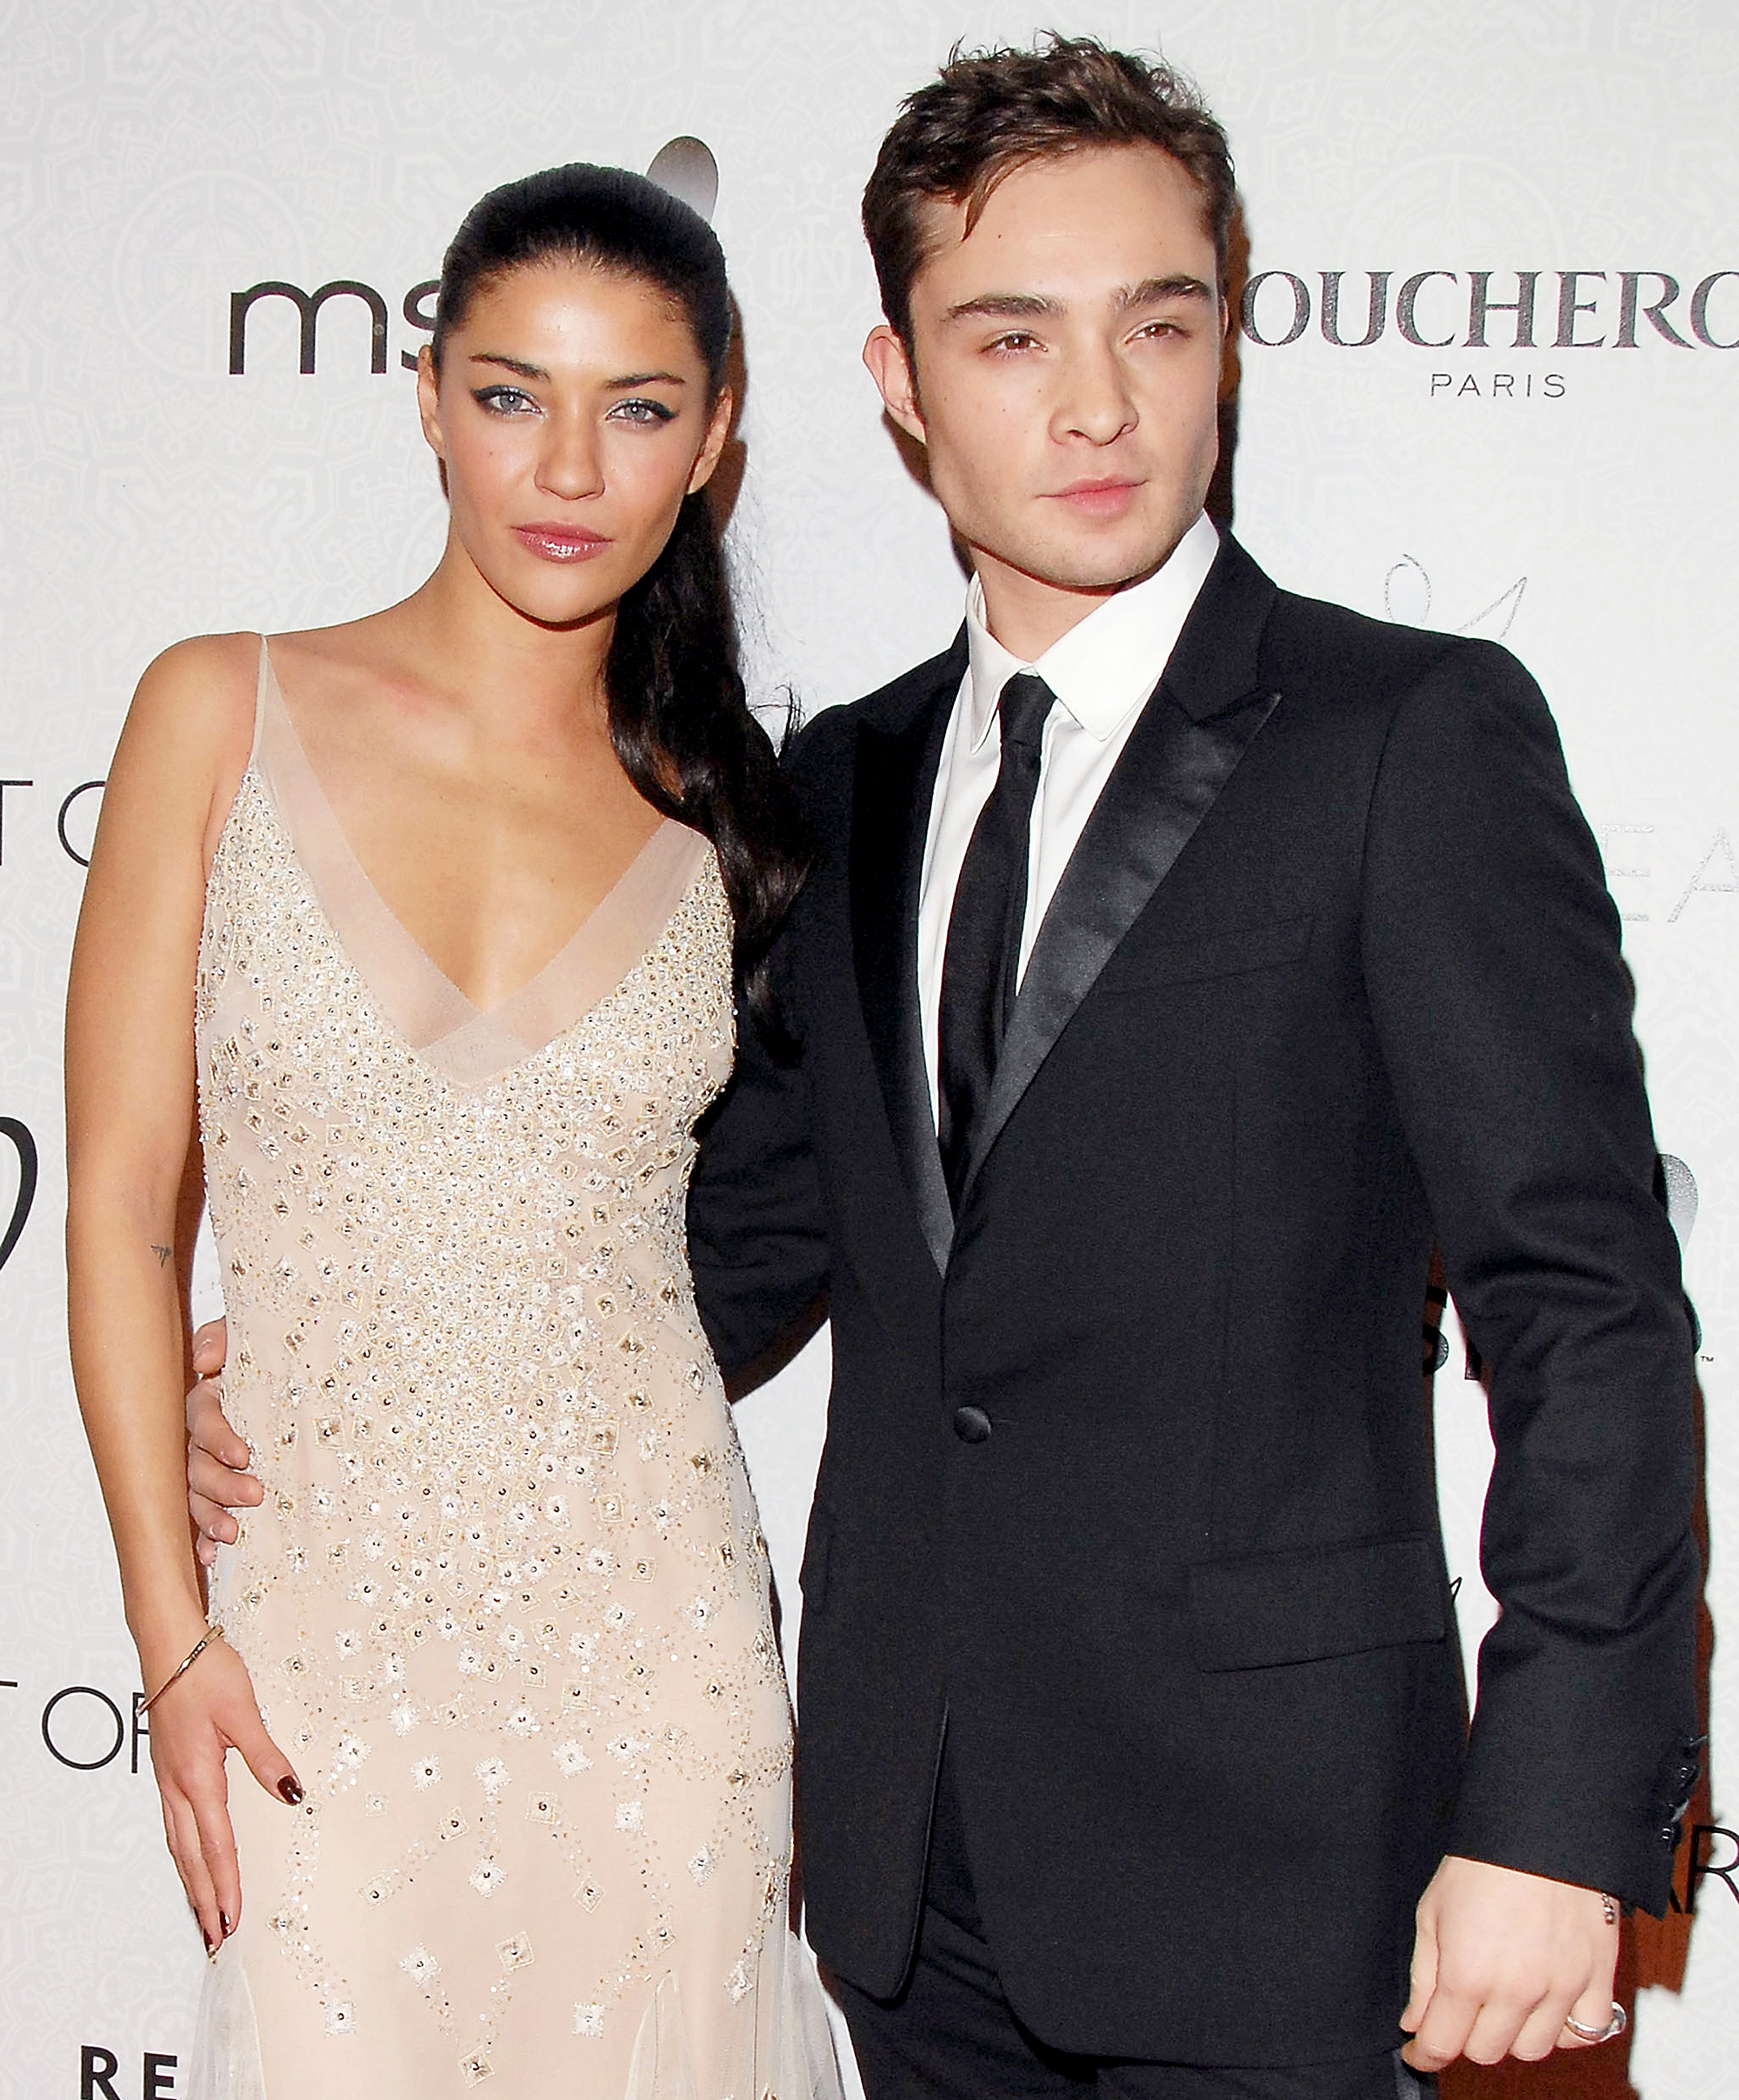 Jessica Szohr Reacts to Rape Accusations Against Ed Westwick